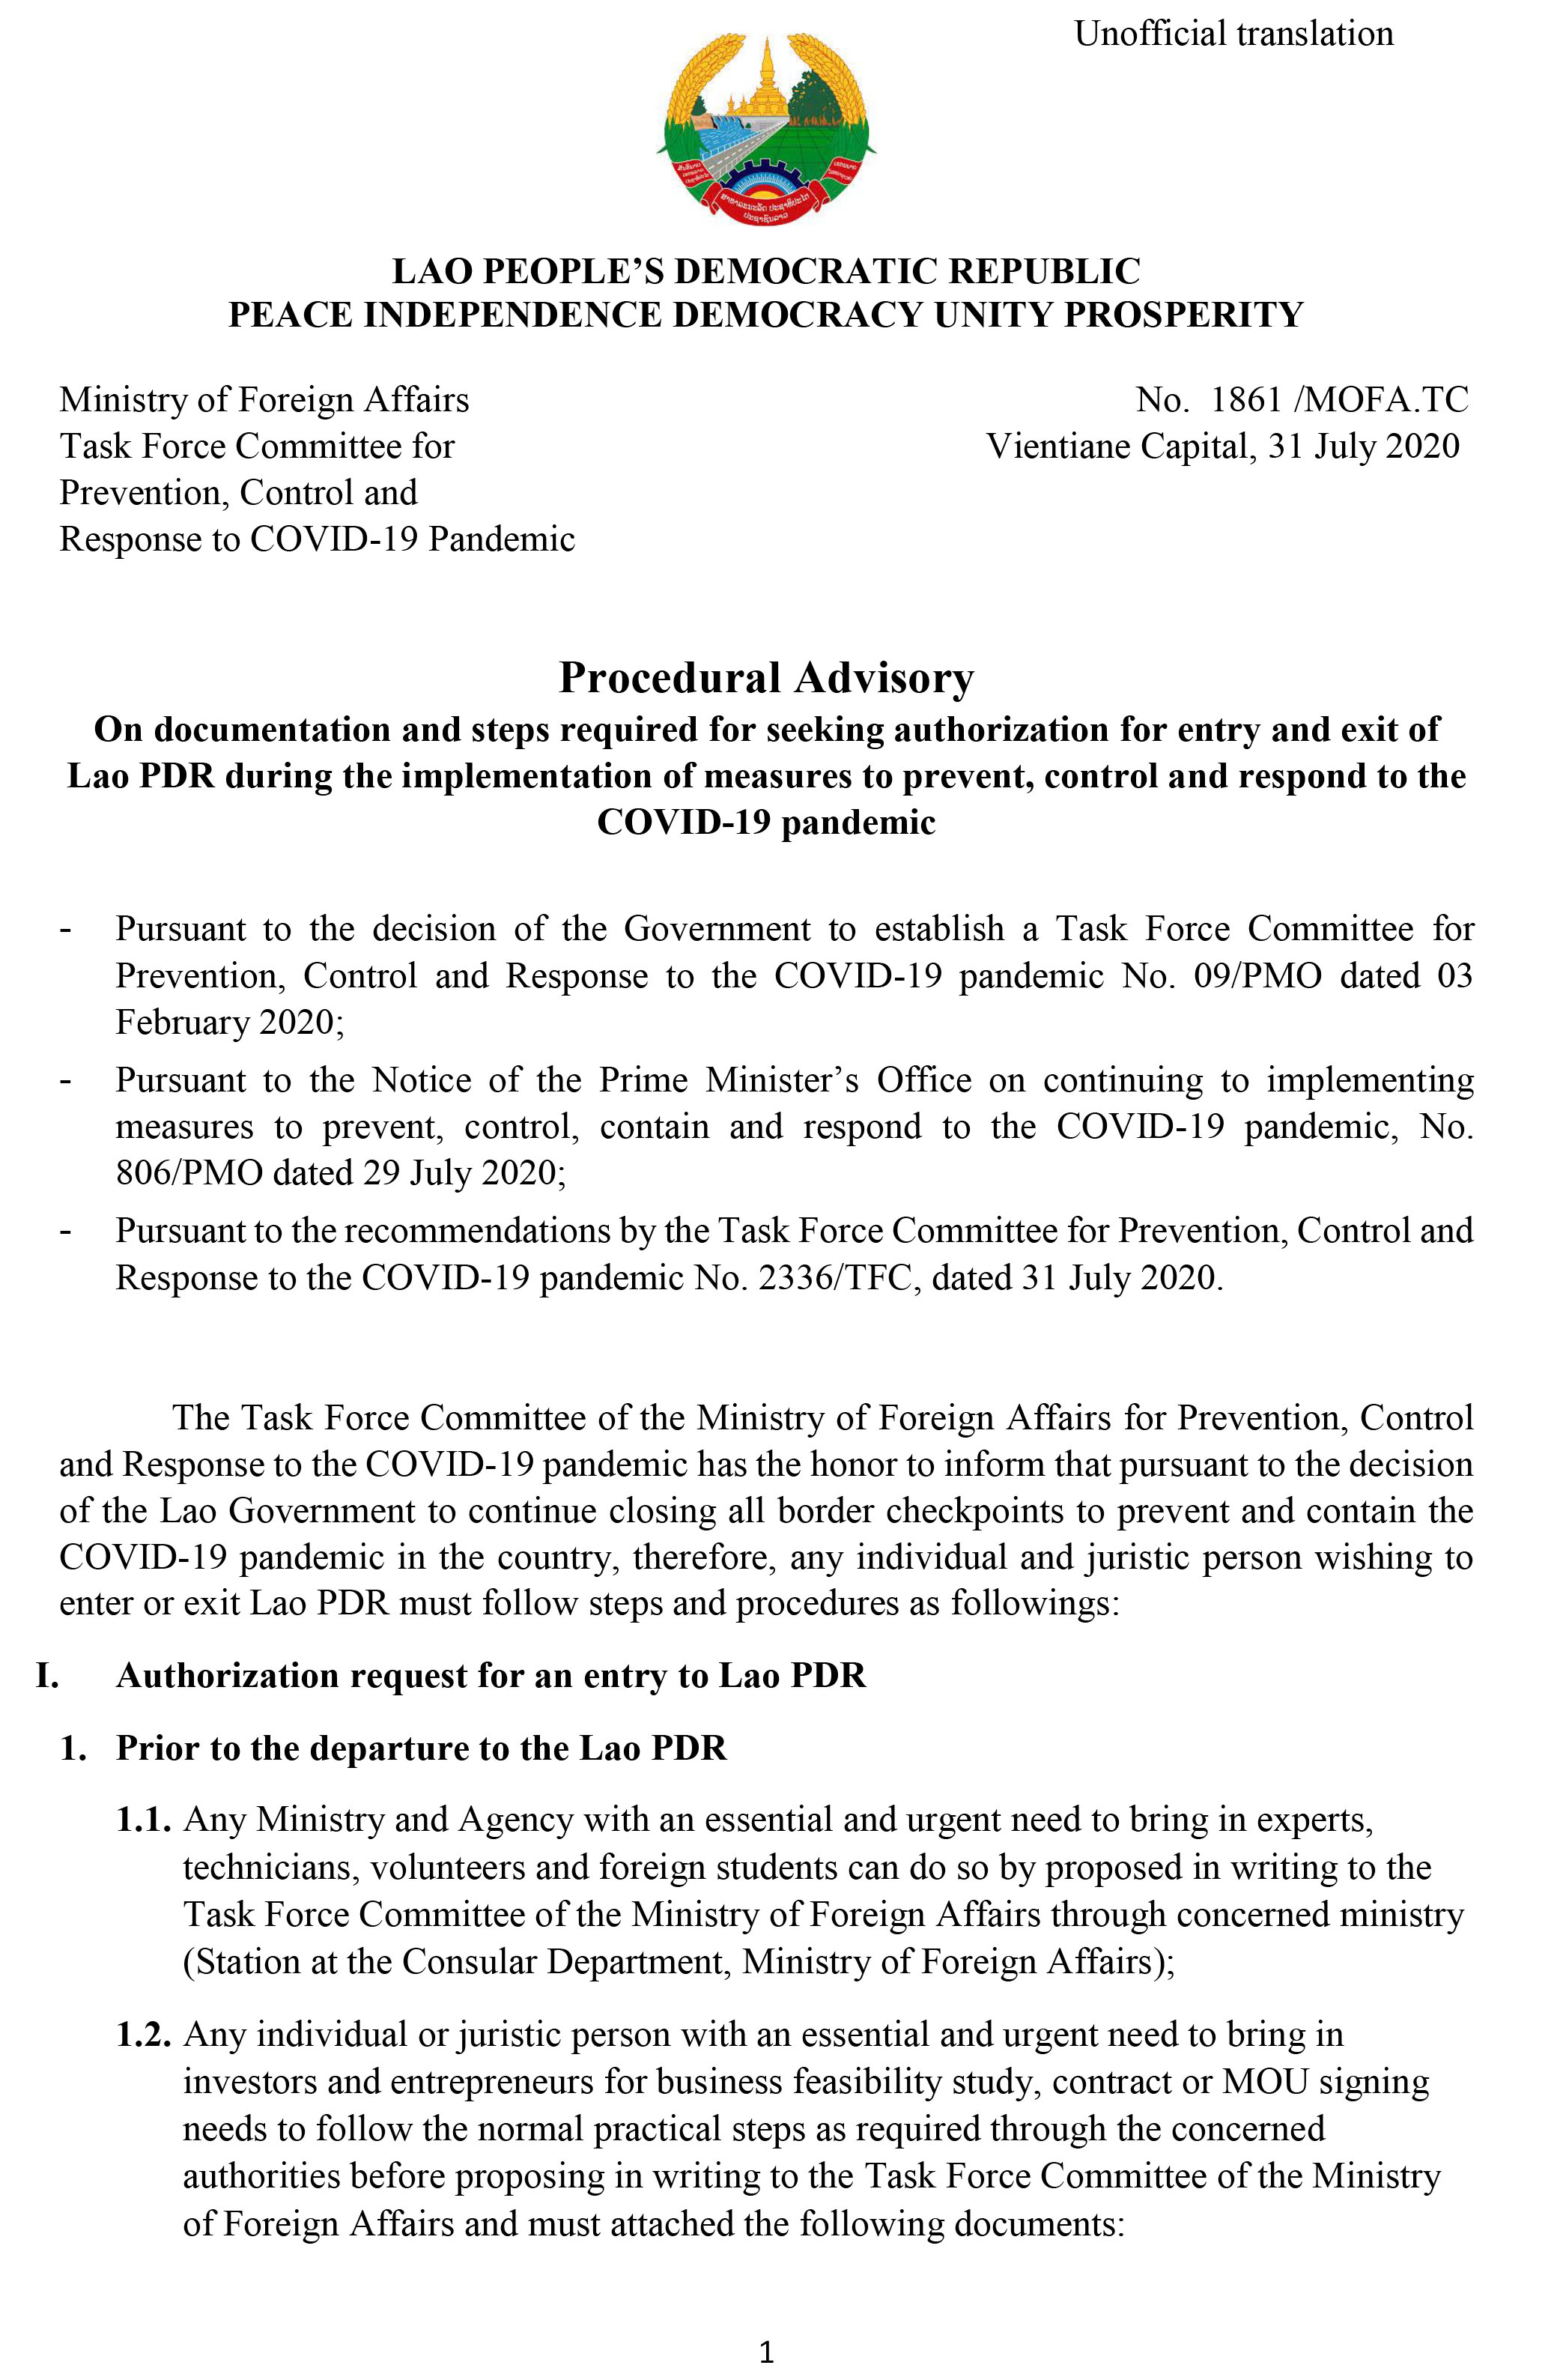 MOFA-Procedural Advisory on documentation and steps 1861-1